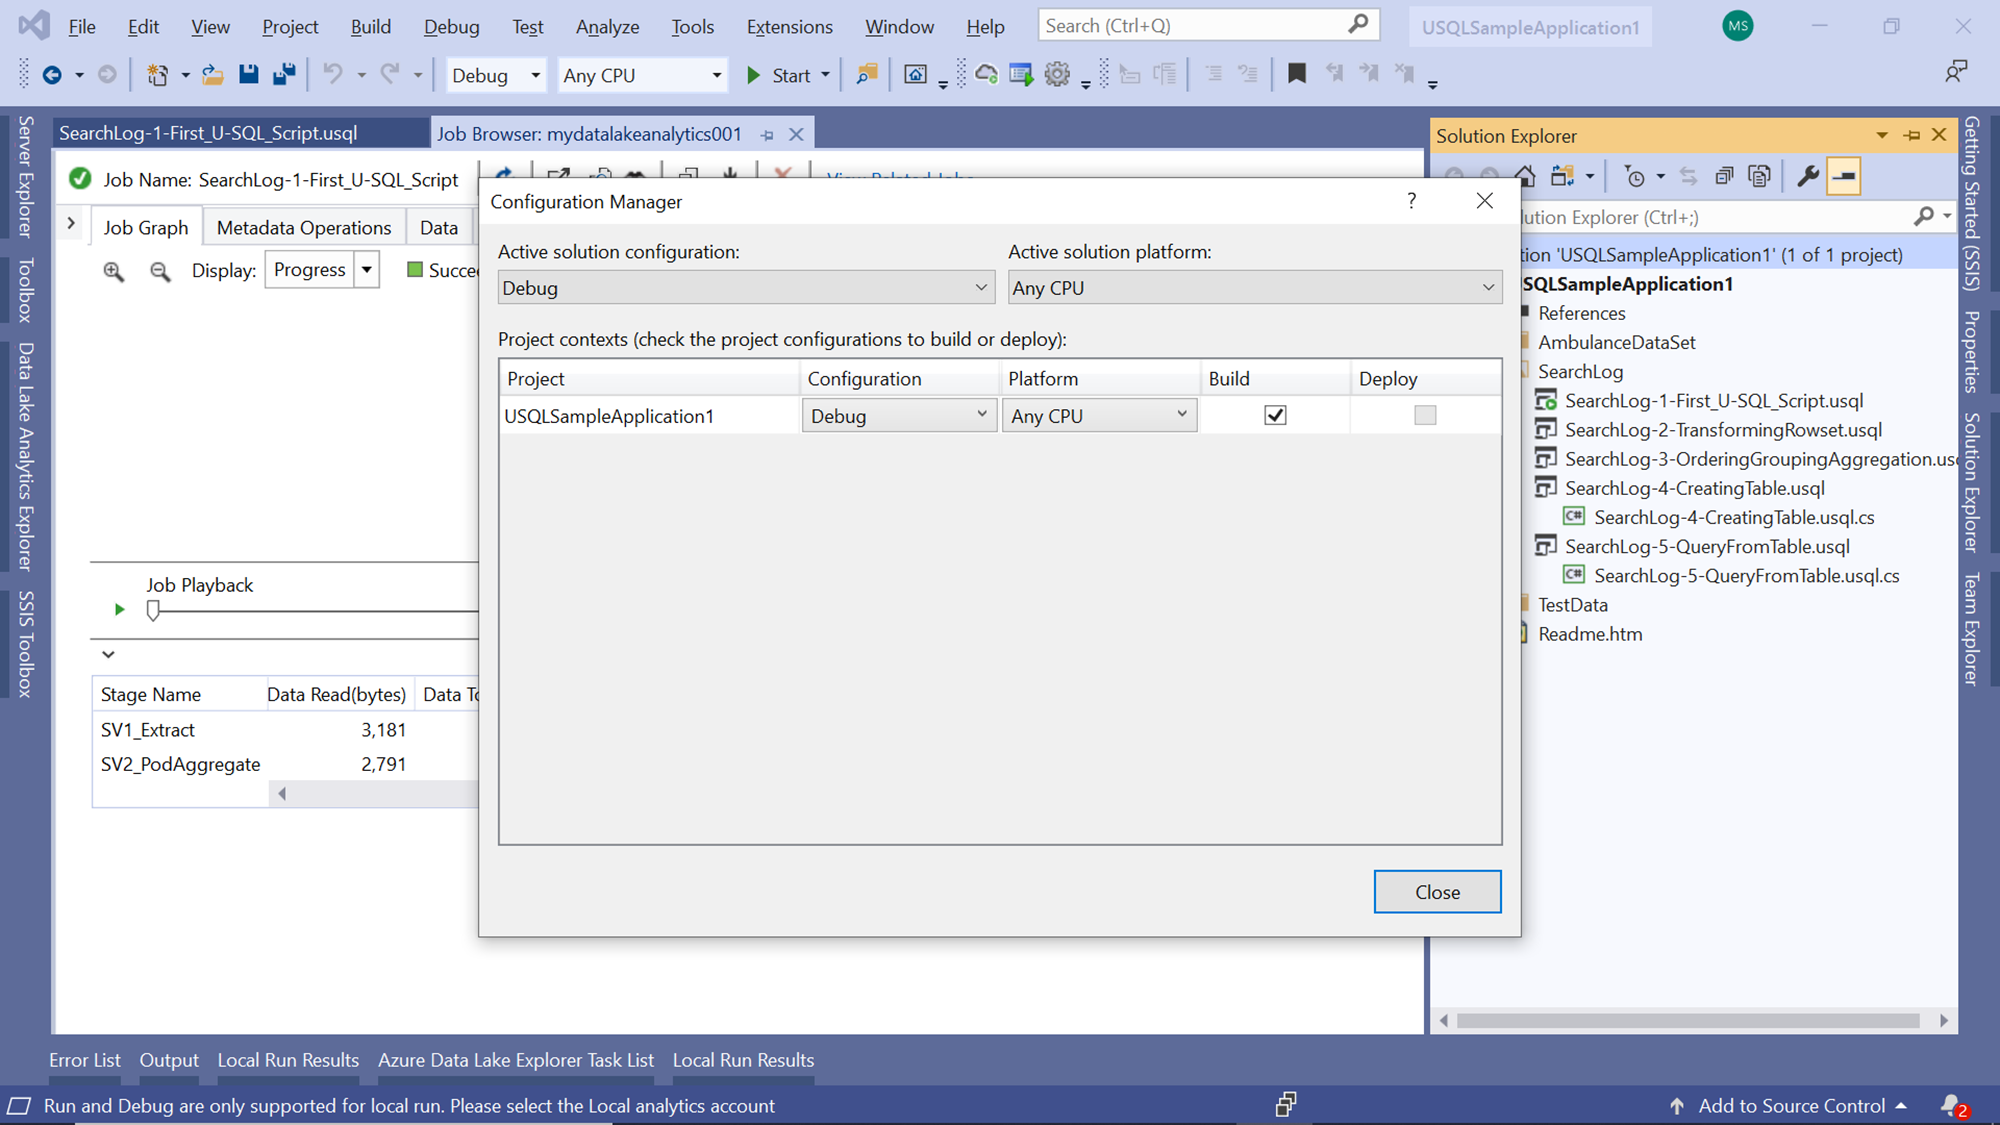 U-SQL Application Configuration Manager